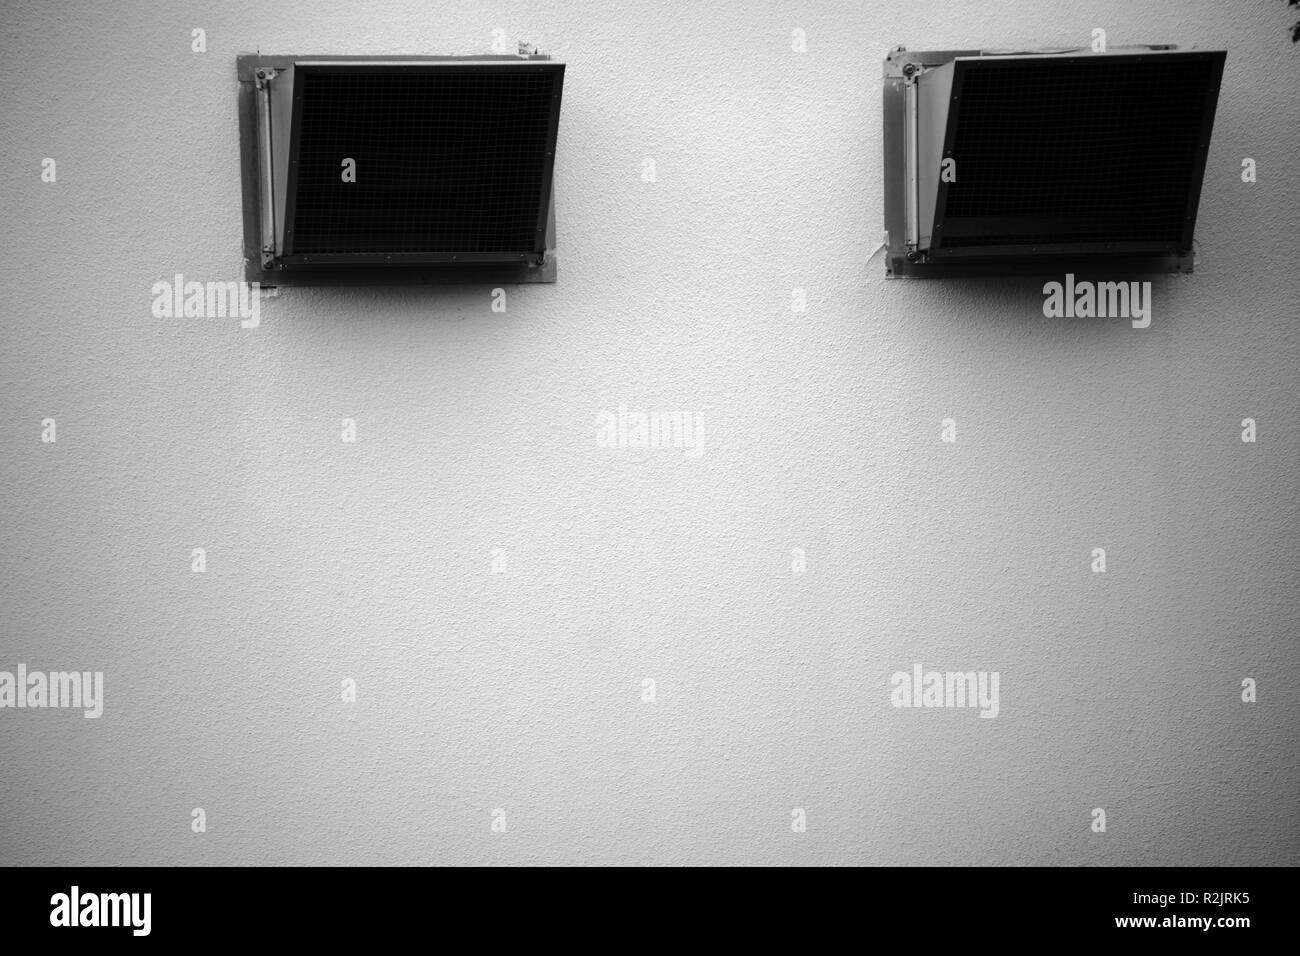 Barred ventilation of a public building with restaurants, - Stock Image